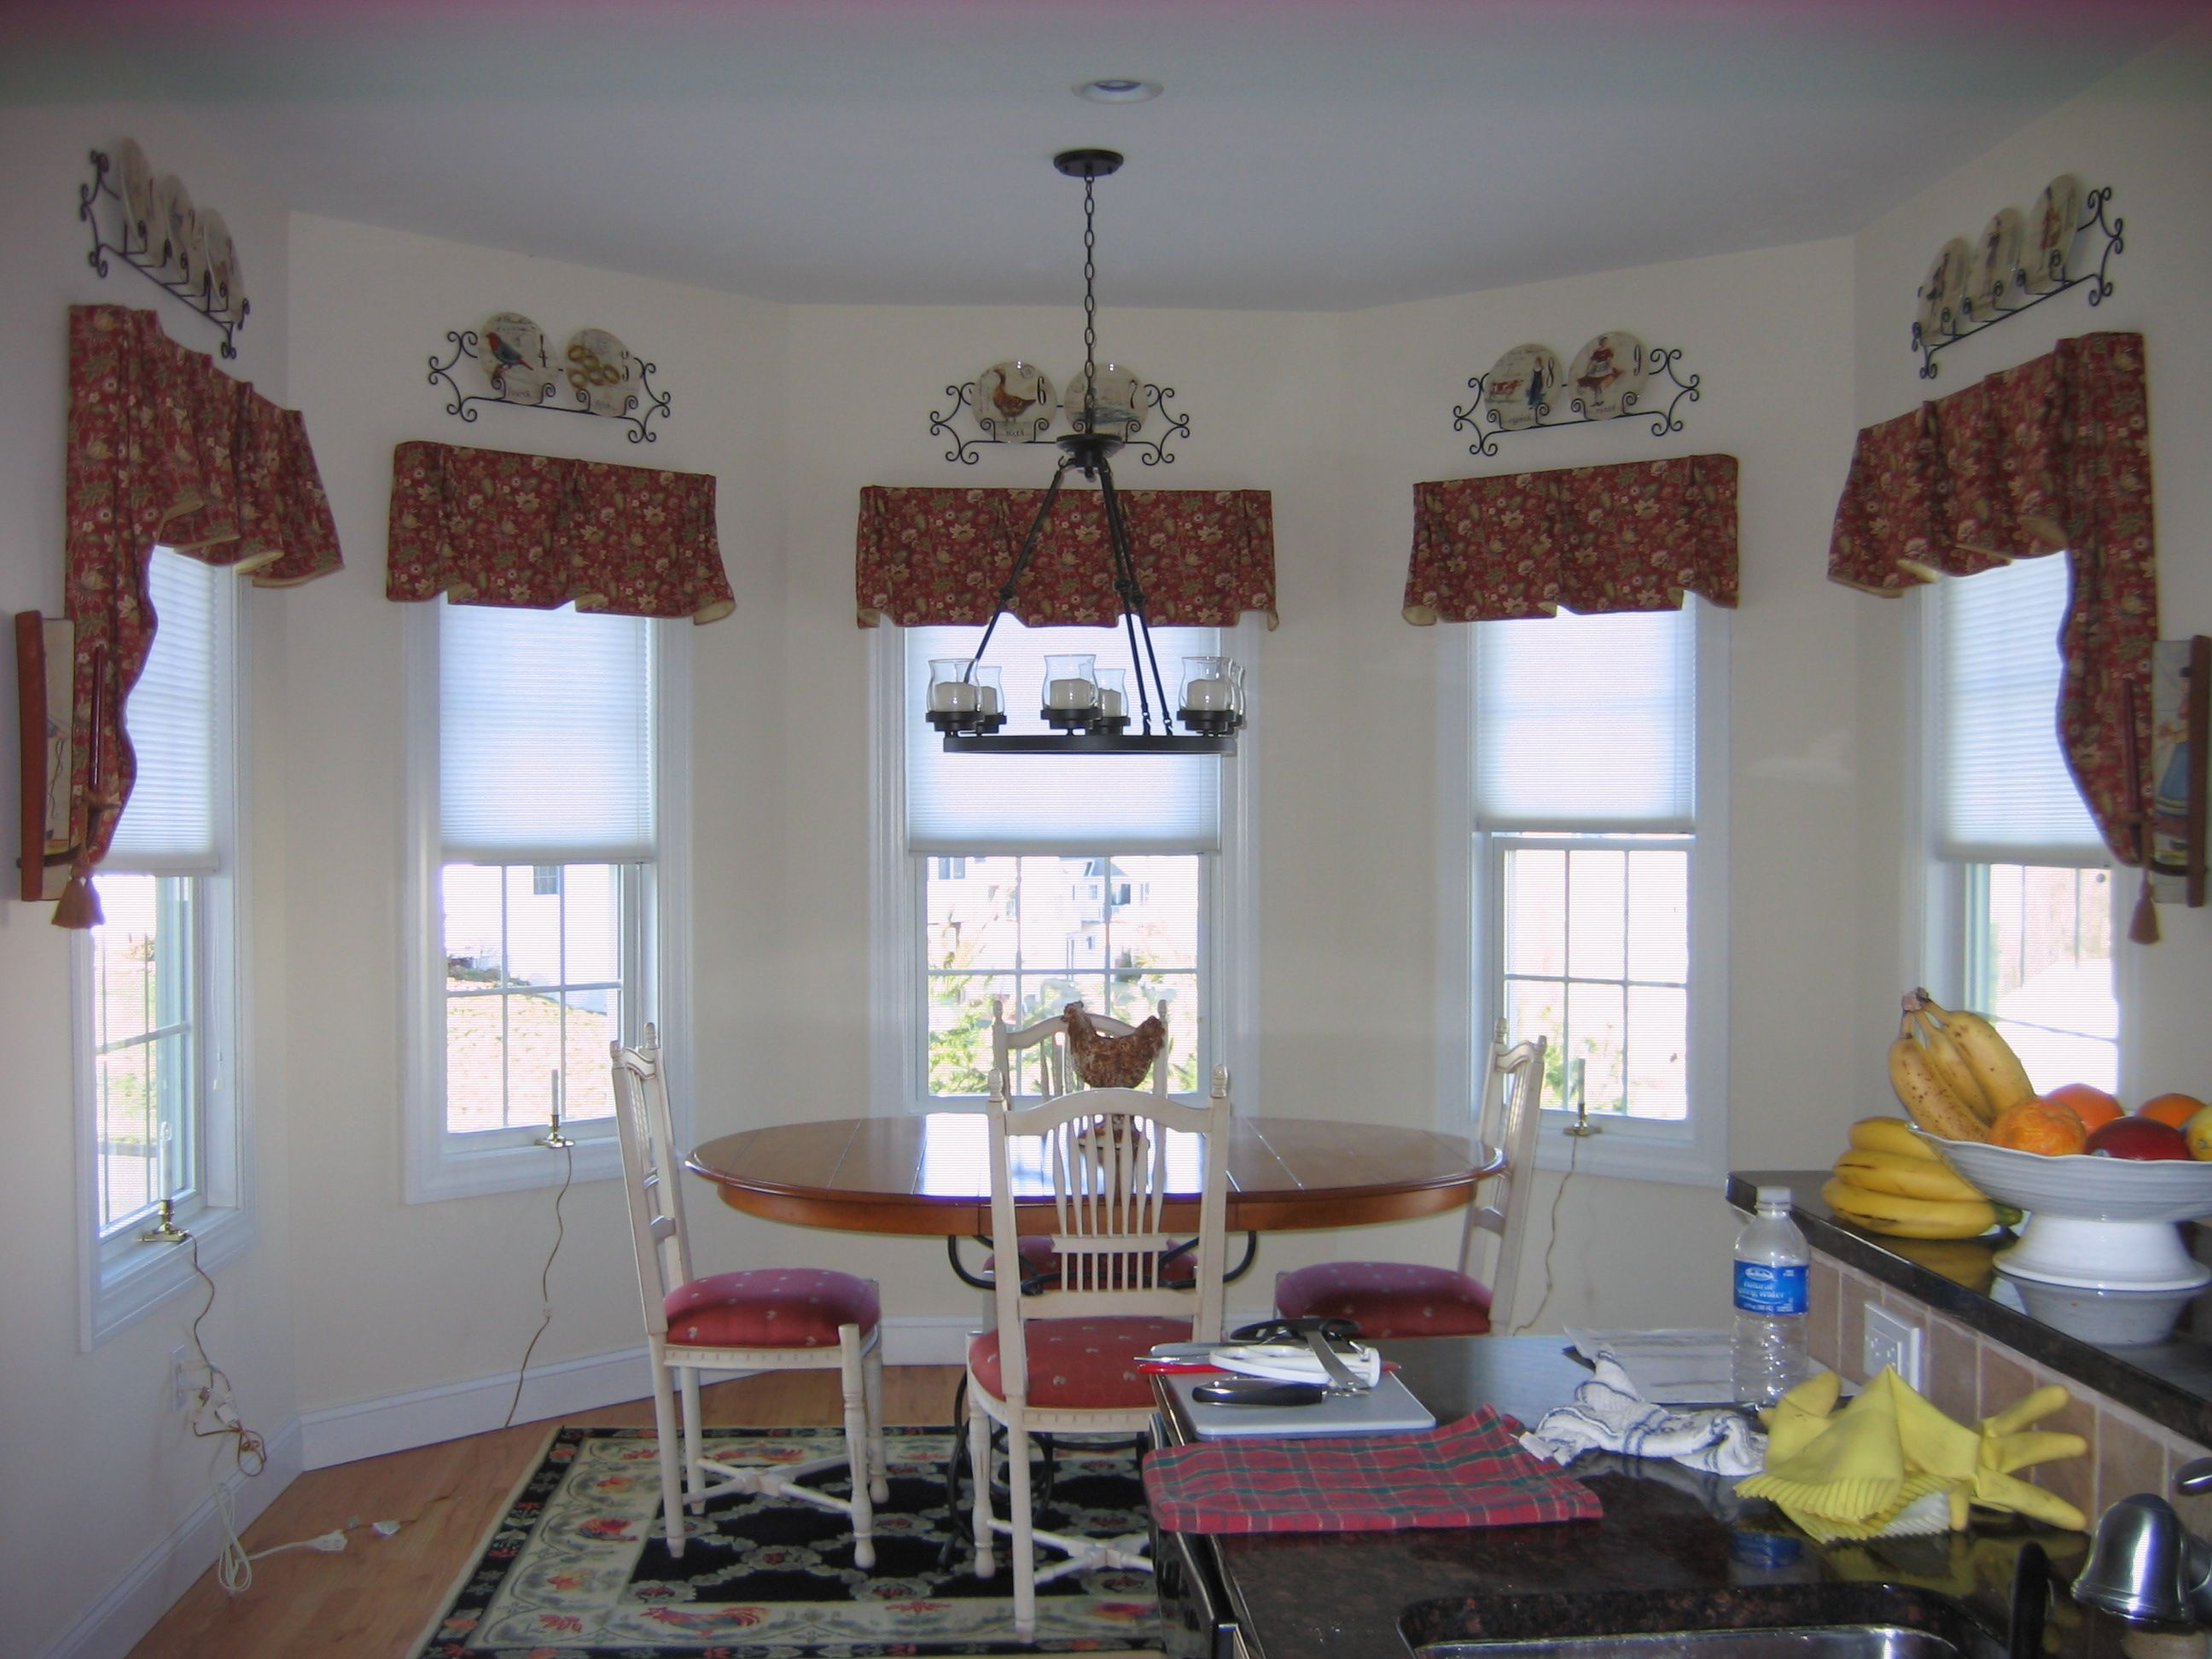 Bell Pleated Valances Over Honeycomb Shades Interior Design